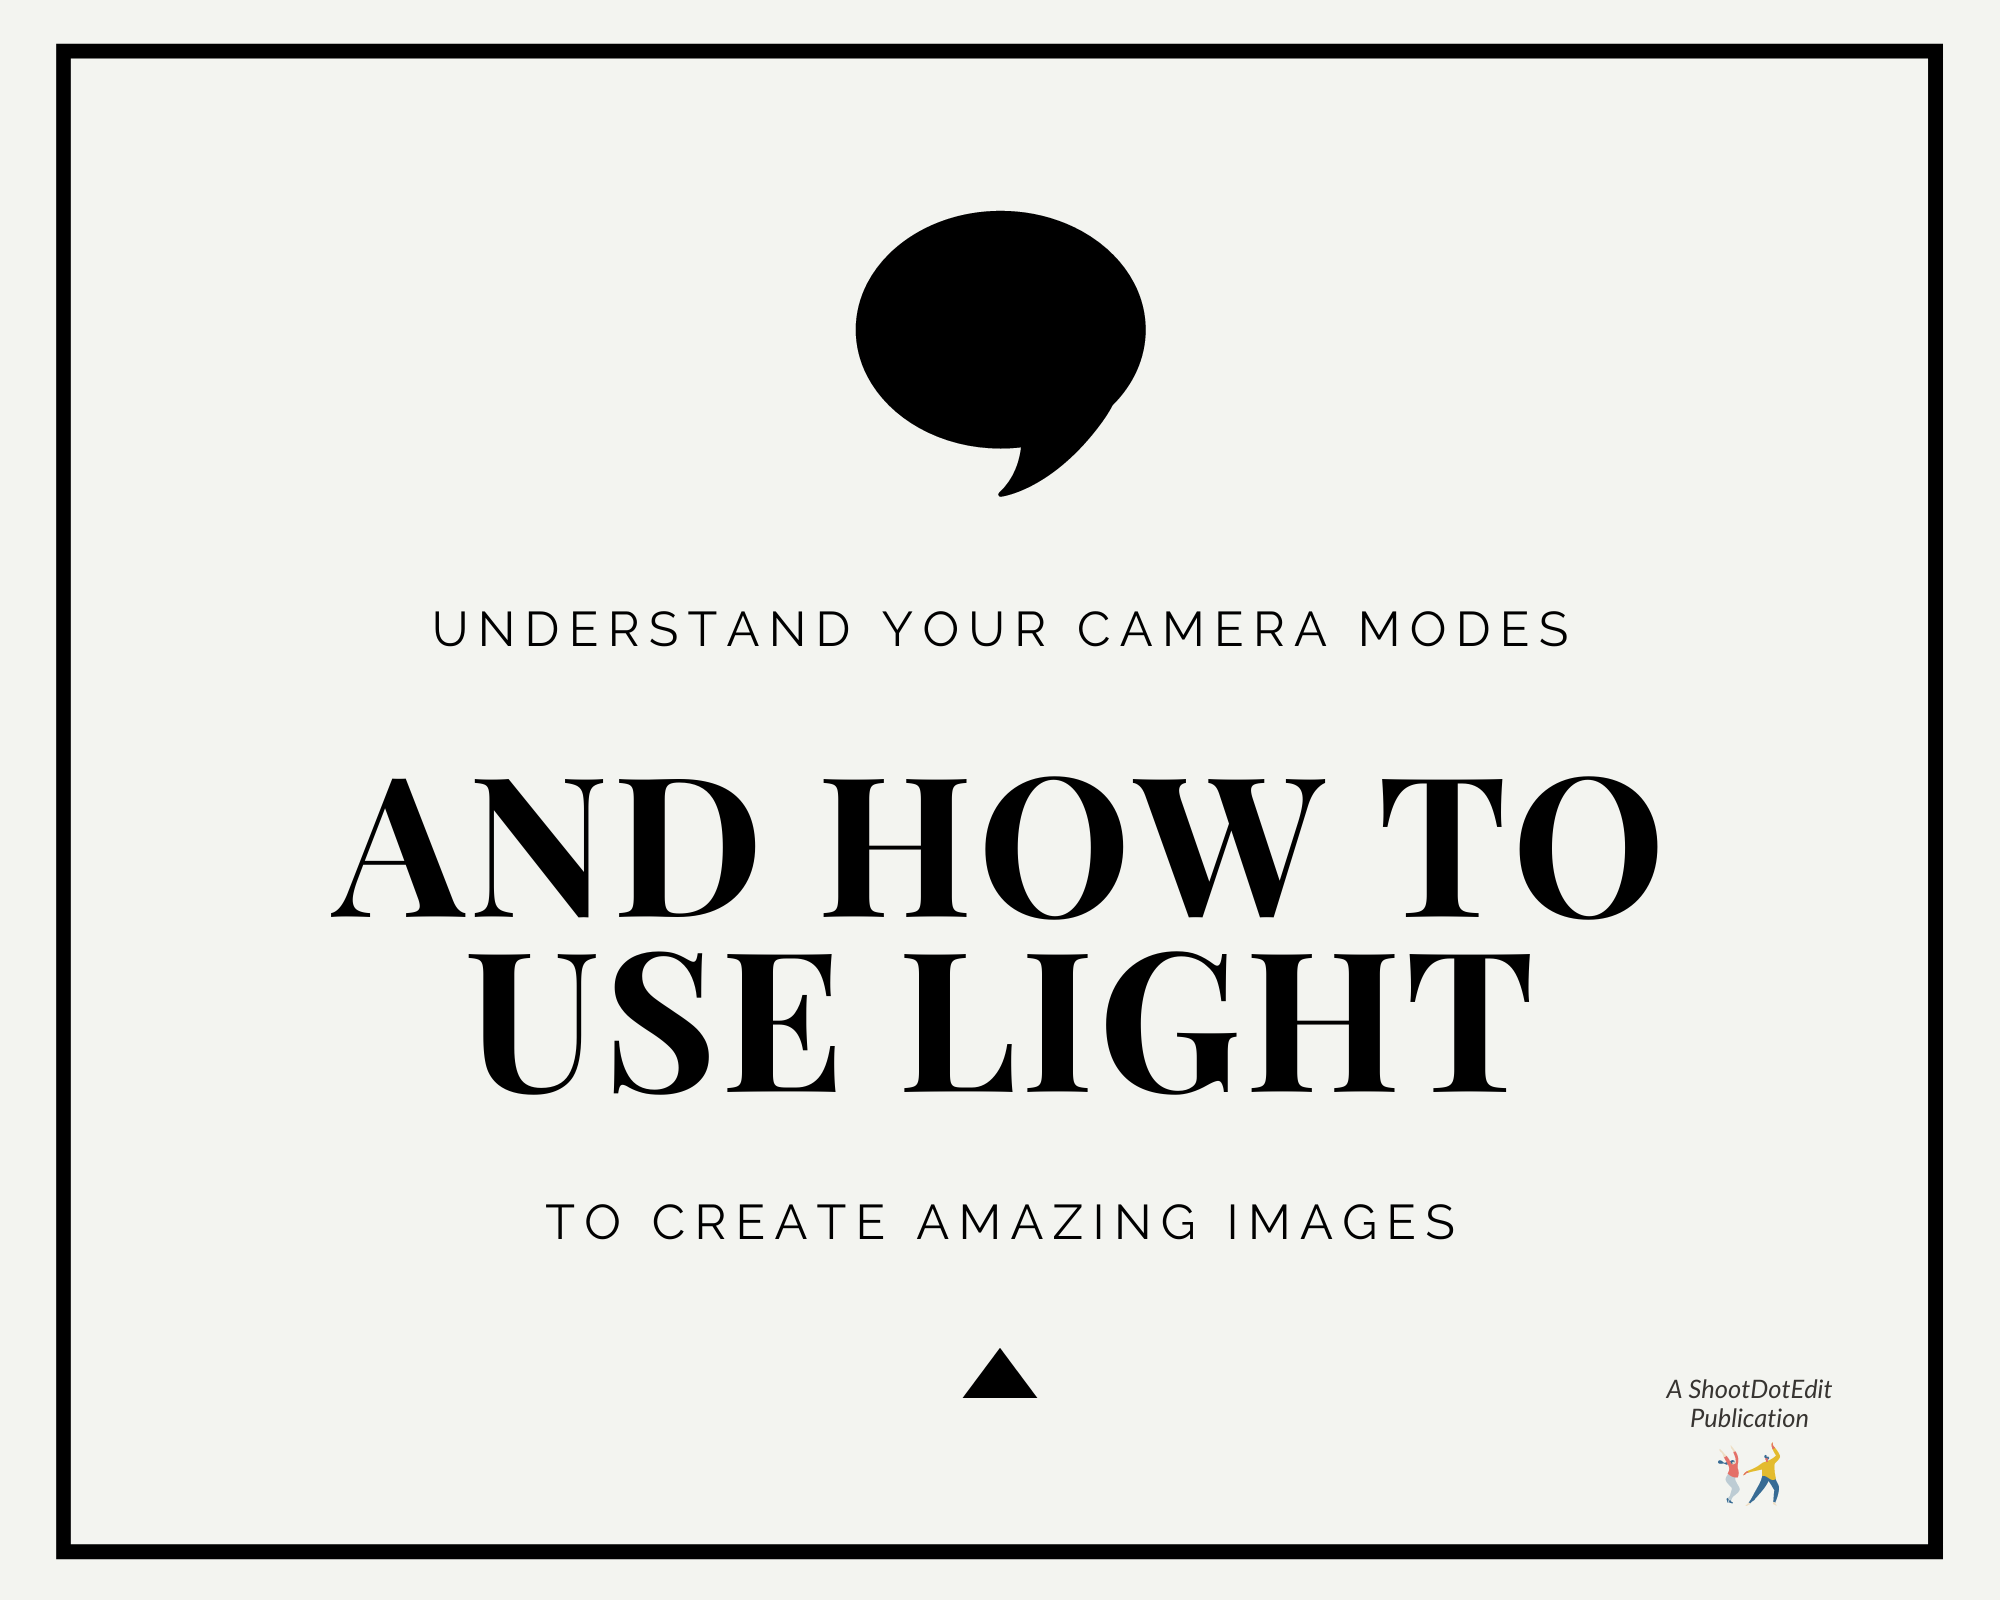 Infographic stating understand your camera modes and how to use the light to create amazing images